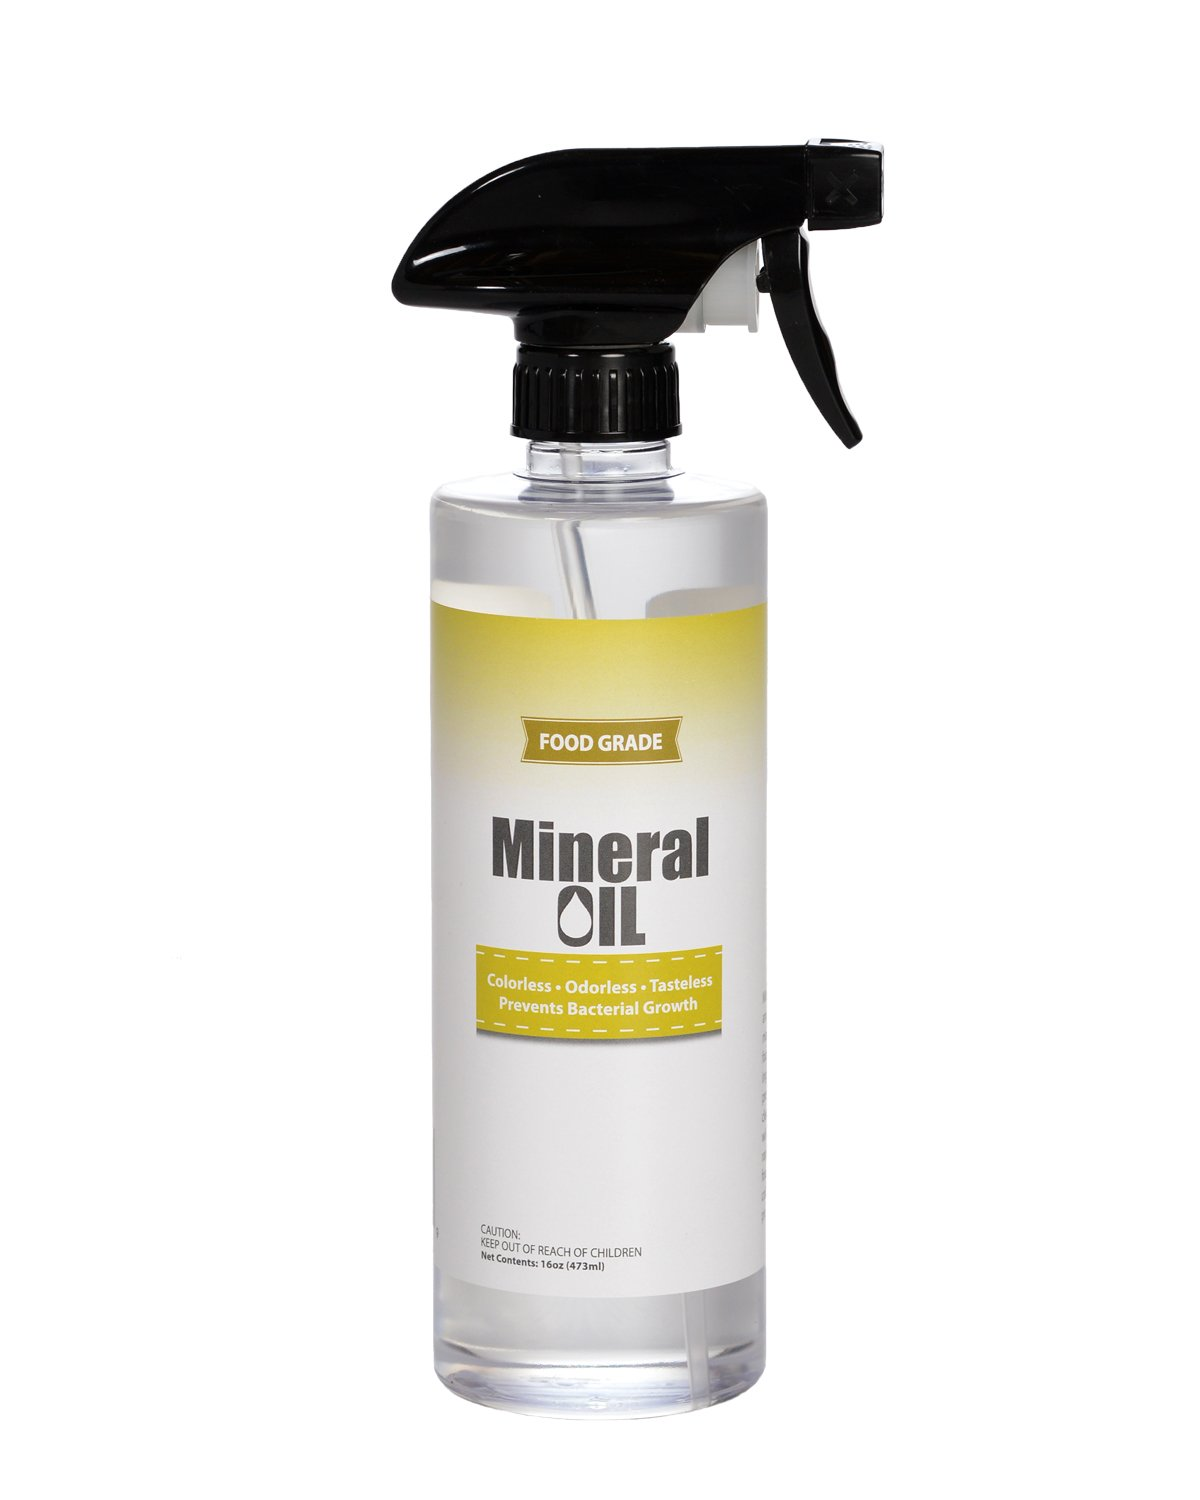 Premium 100% Pure Food Grade Mineral Oil USP, 16oz Spray Bottle, NSF Approved, Butcher Block and Cutting Board Oil